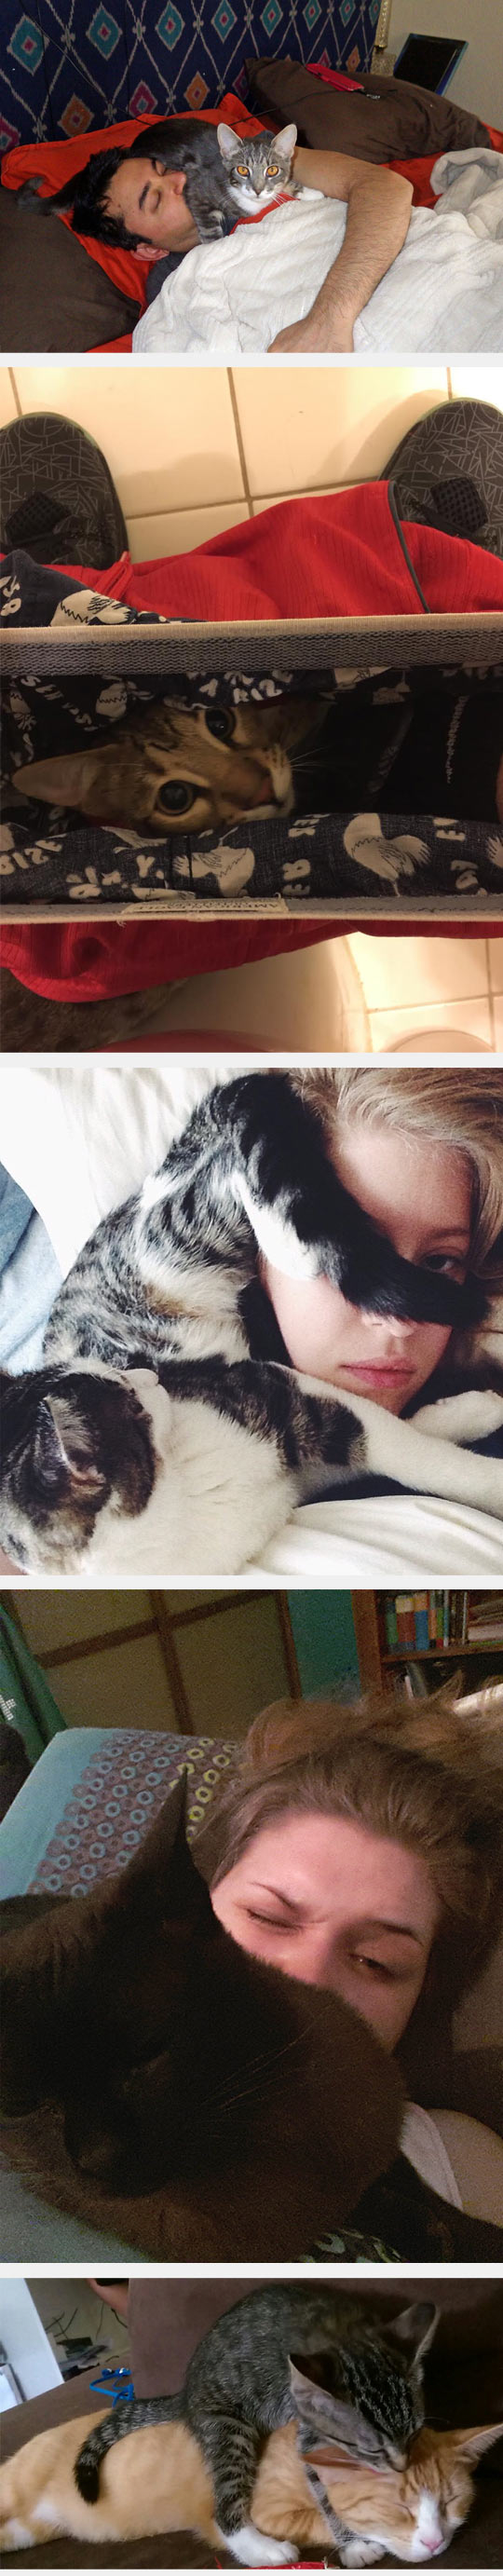 funny-cat-standing-on-owner-face